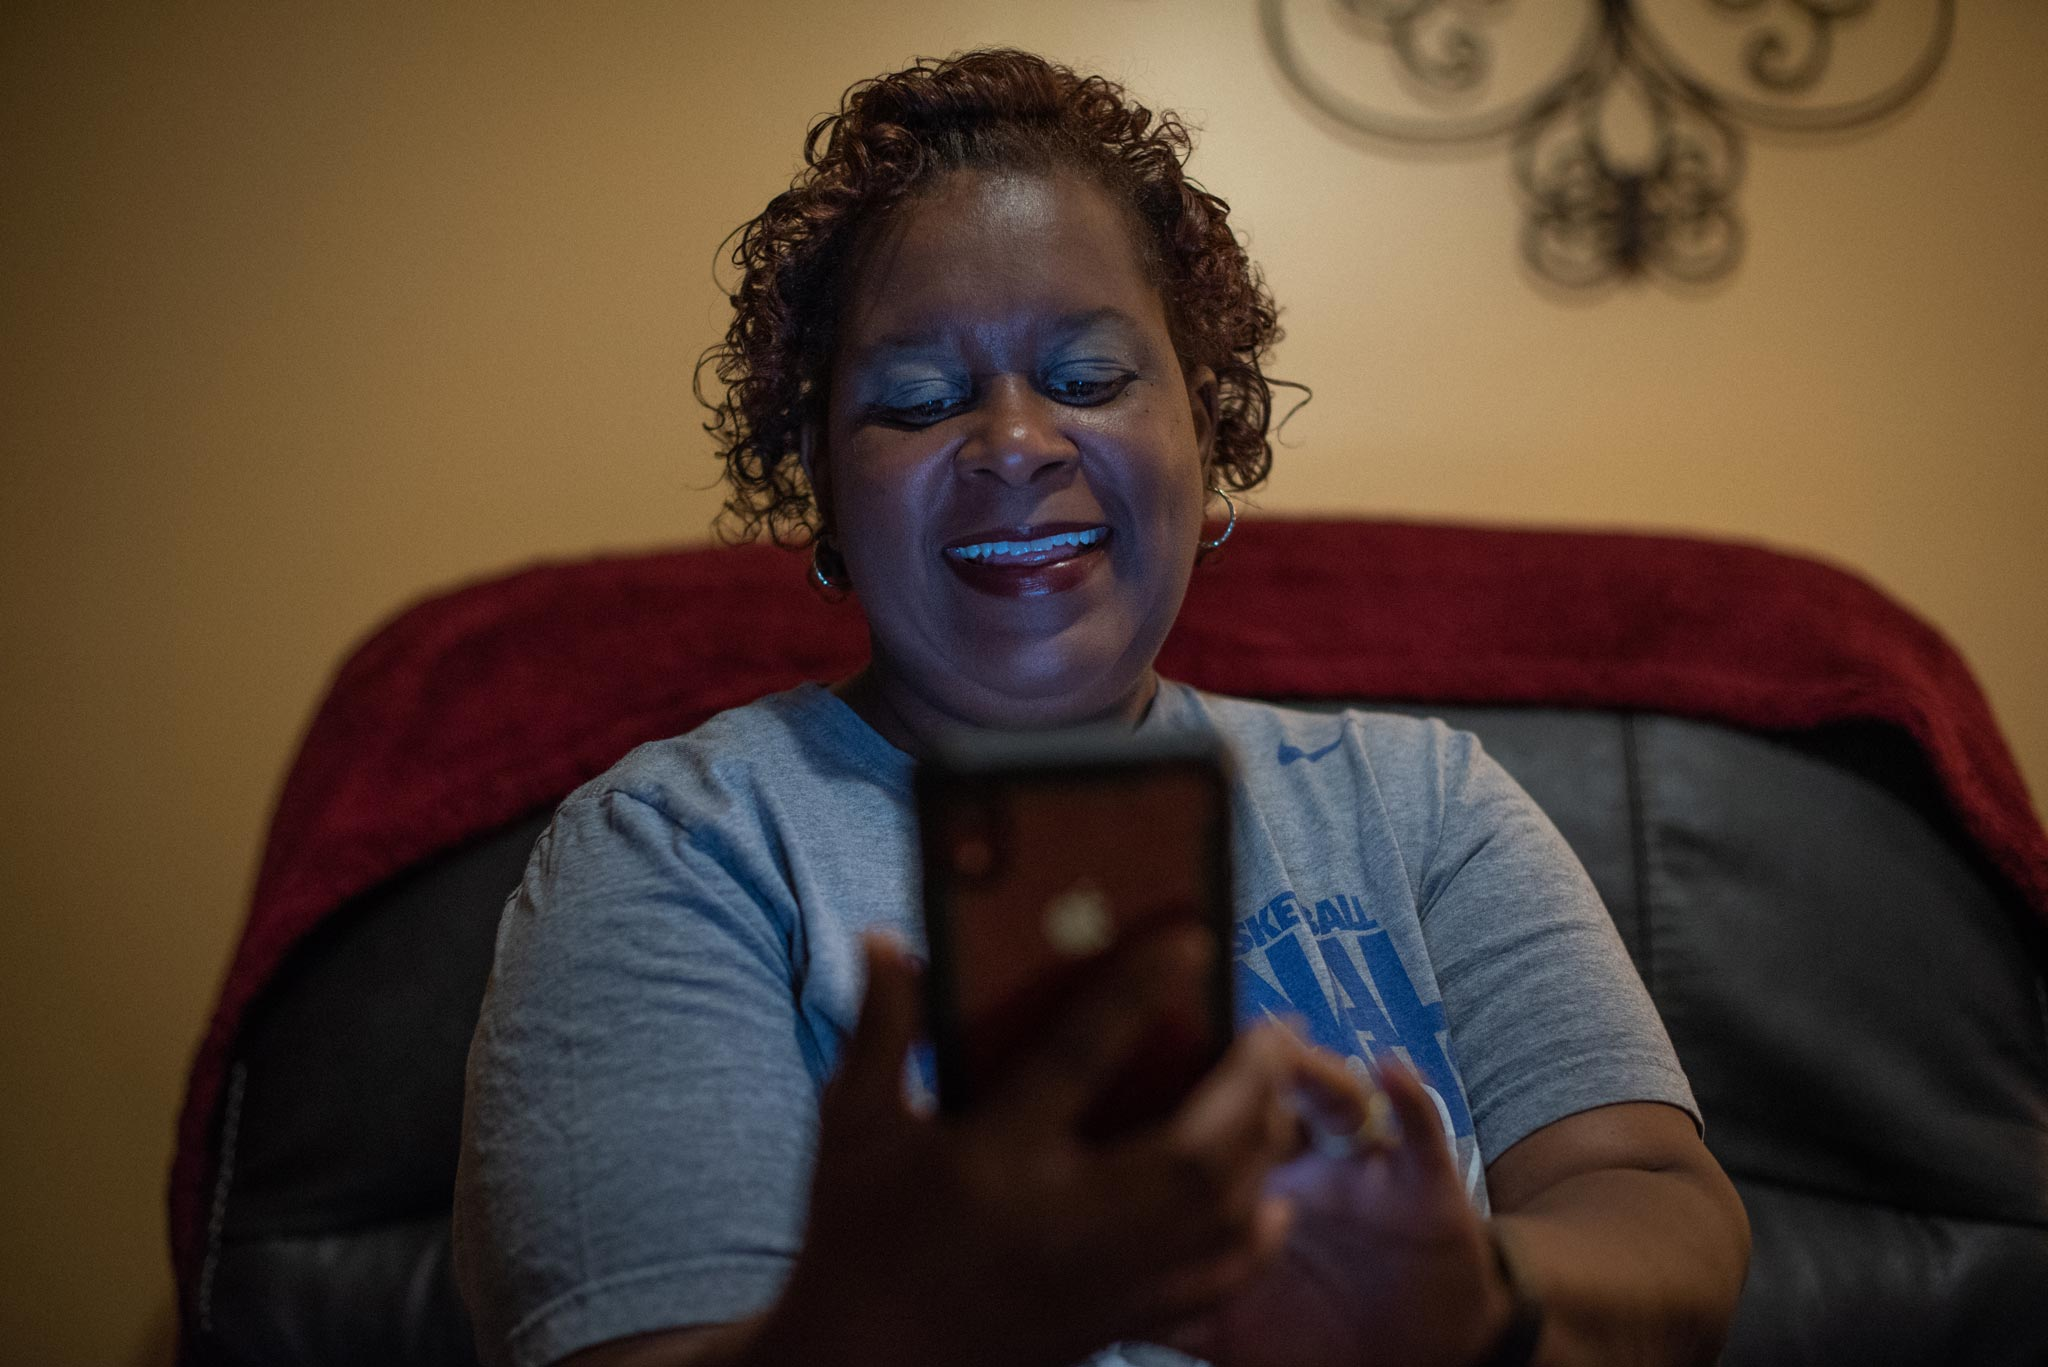 Jeanine smiles as she looks at her phone.